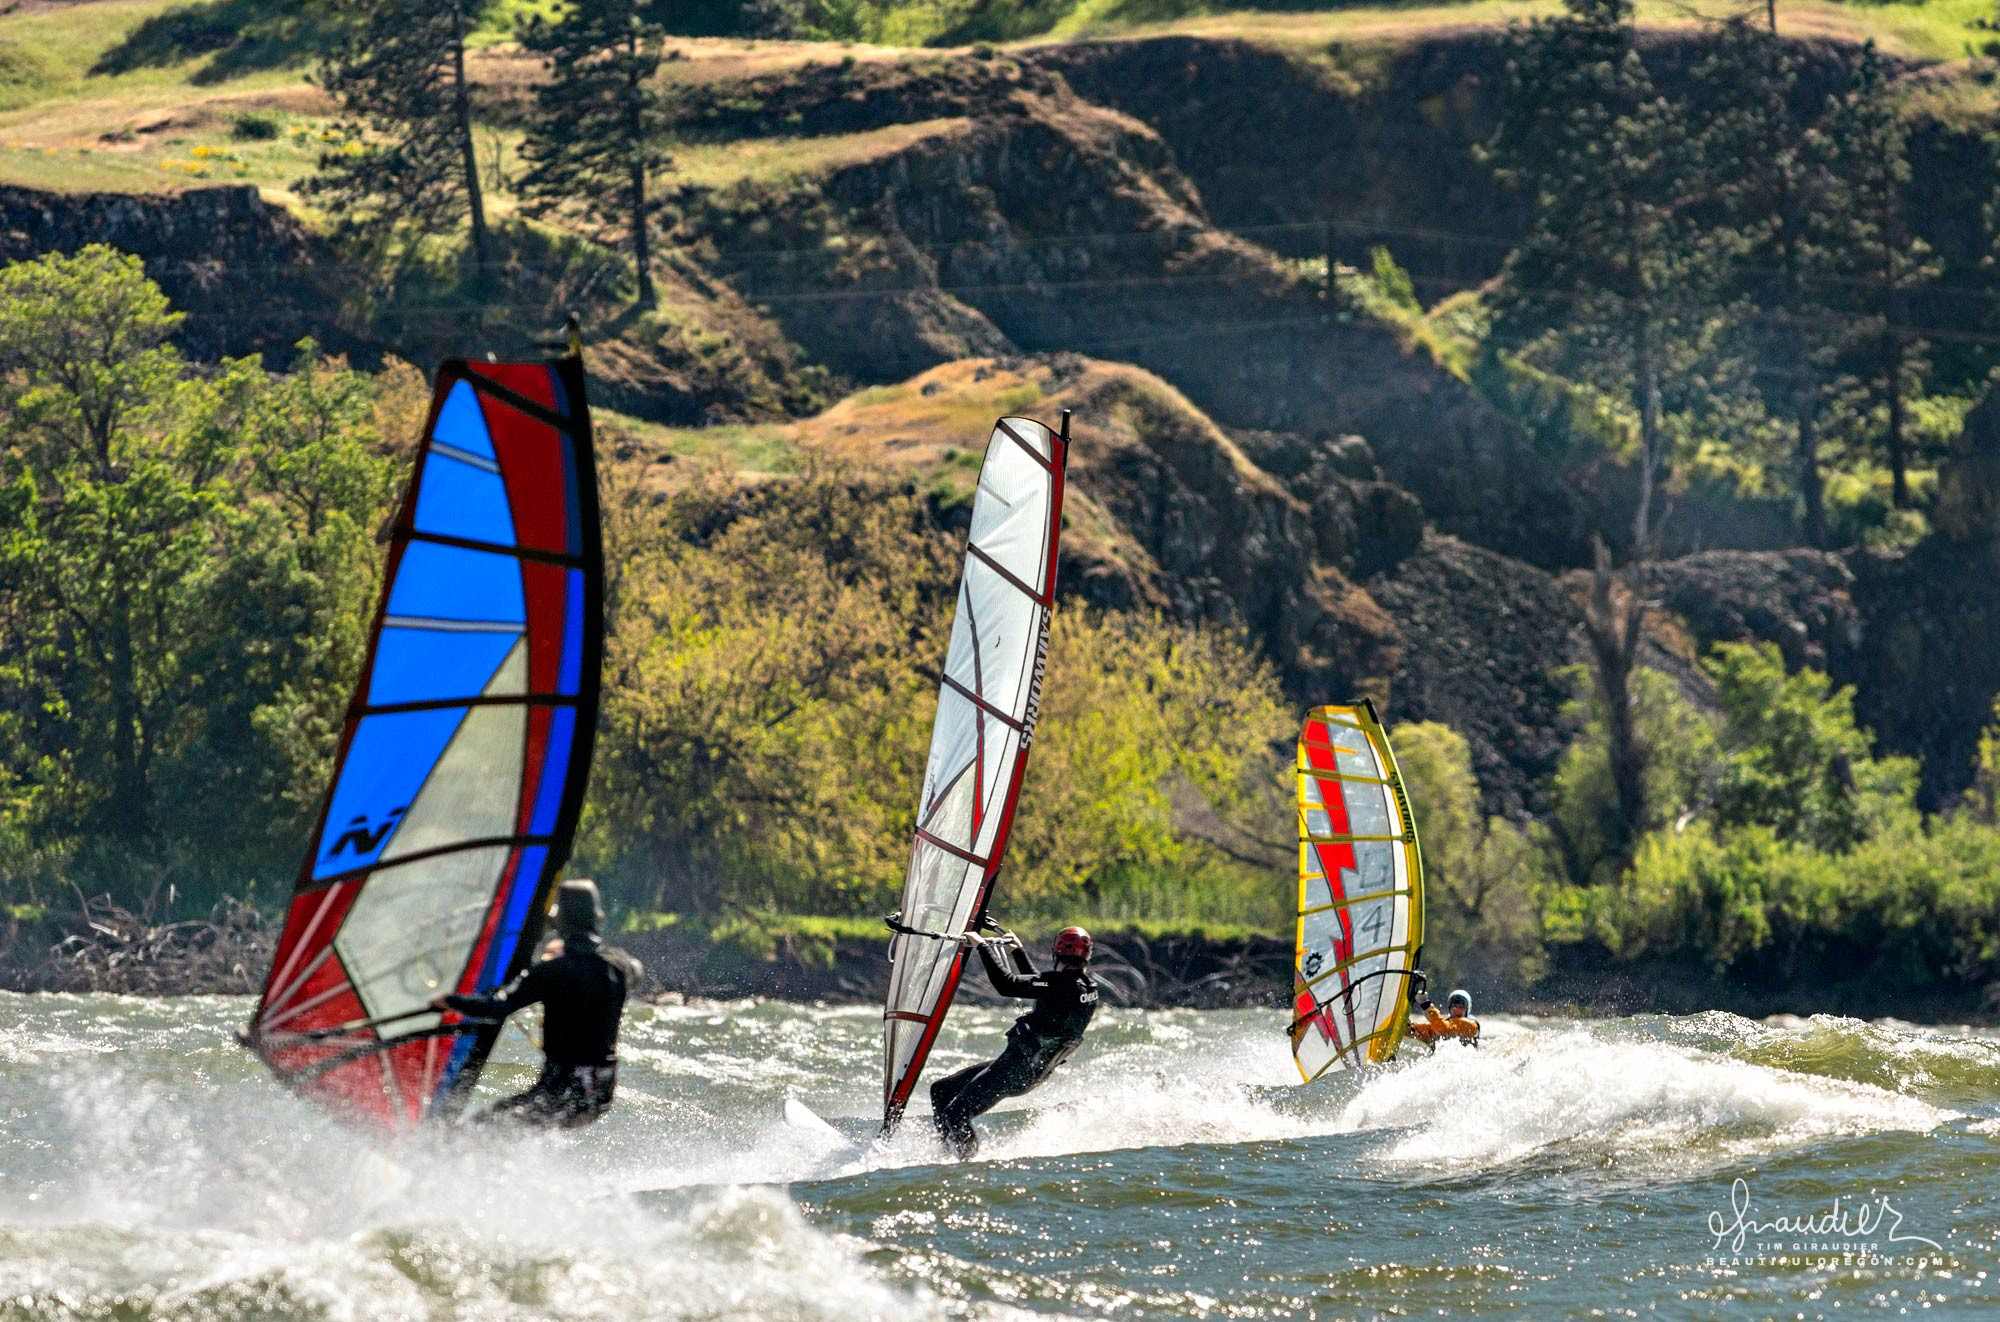 Windsurfers ride high winds at east end of Columbia River Gorge. Hood River County, Oregon.